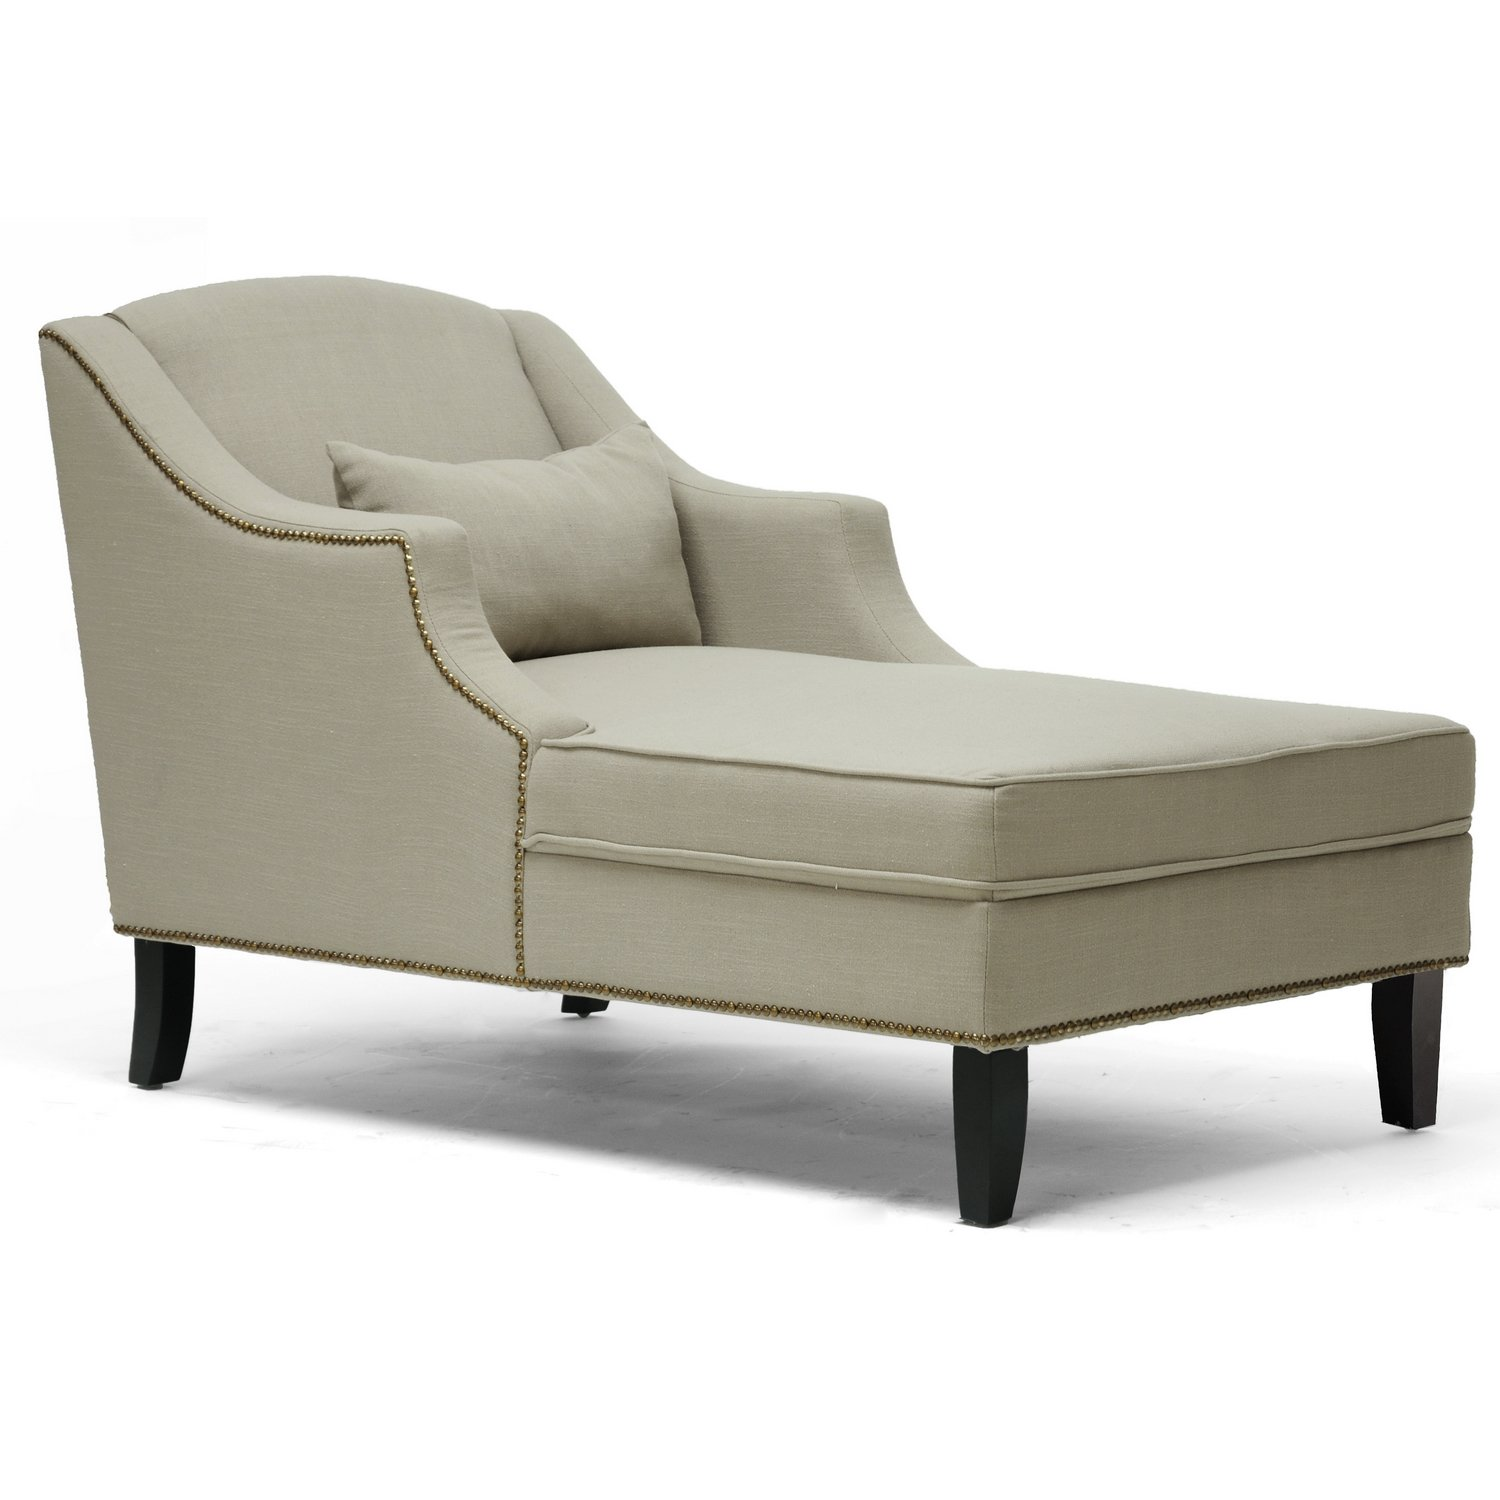 amazon com baxton studio asteria putty linen modern chaise lounge